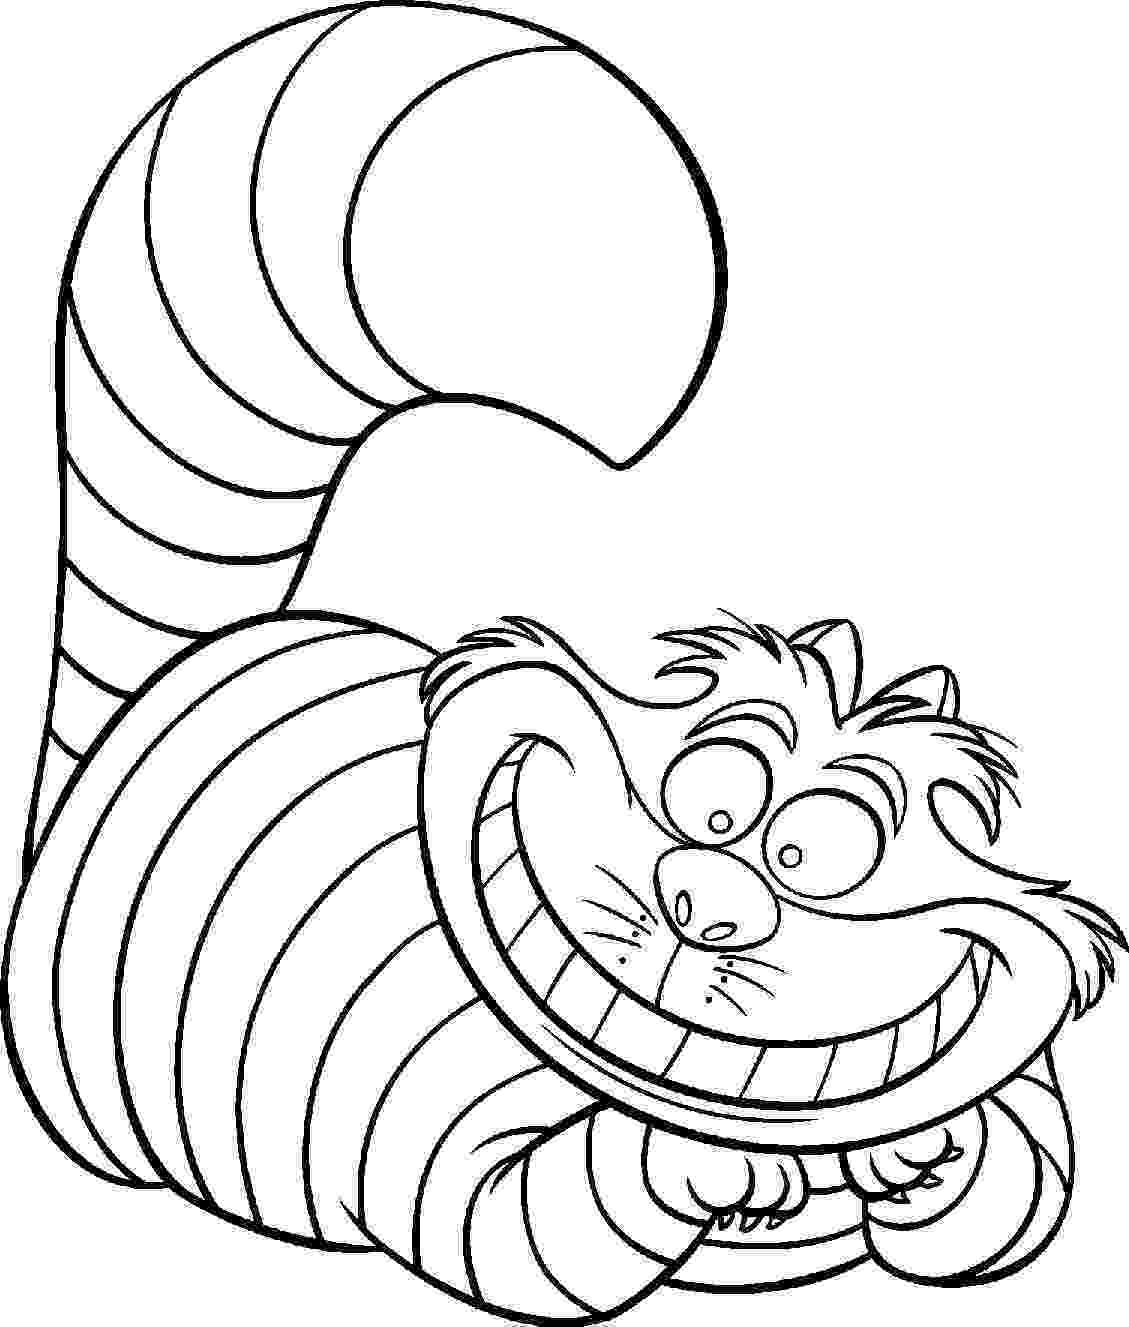 coloring pages of disney characters walt disney jasmine characters coloring page disney coloring pages characters of